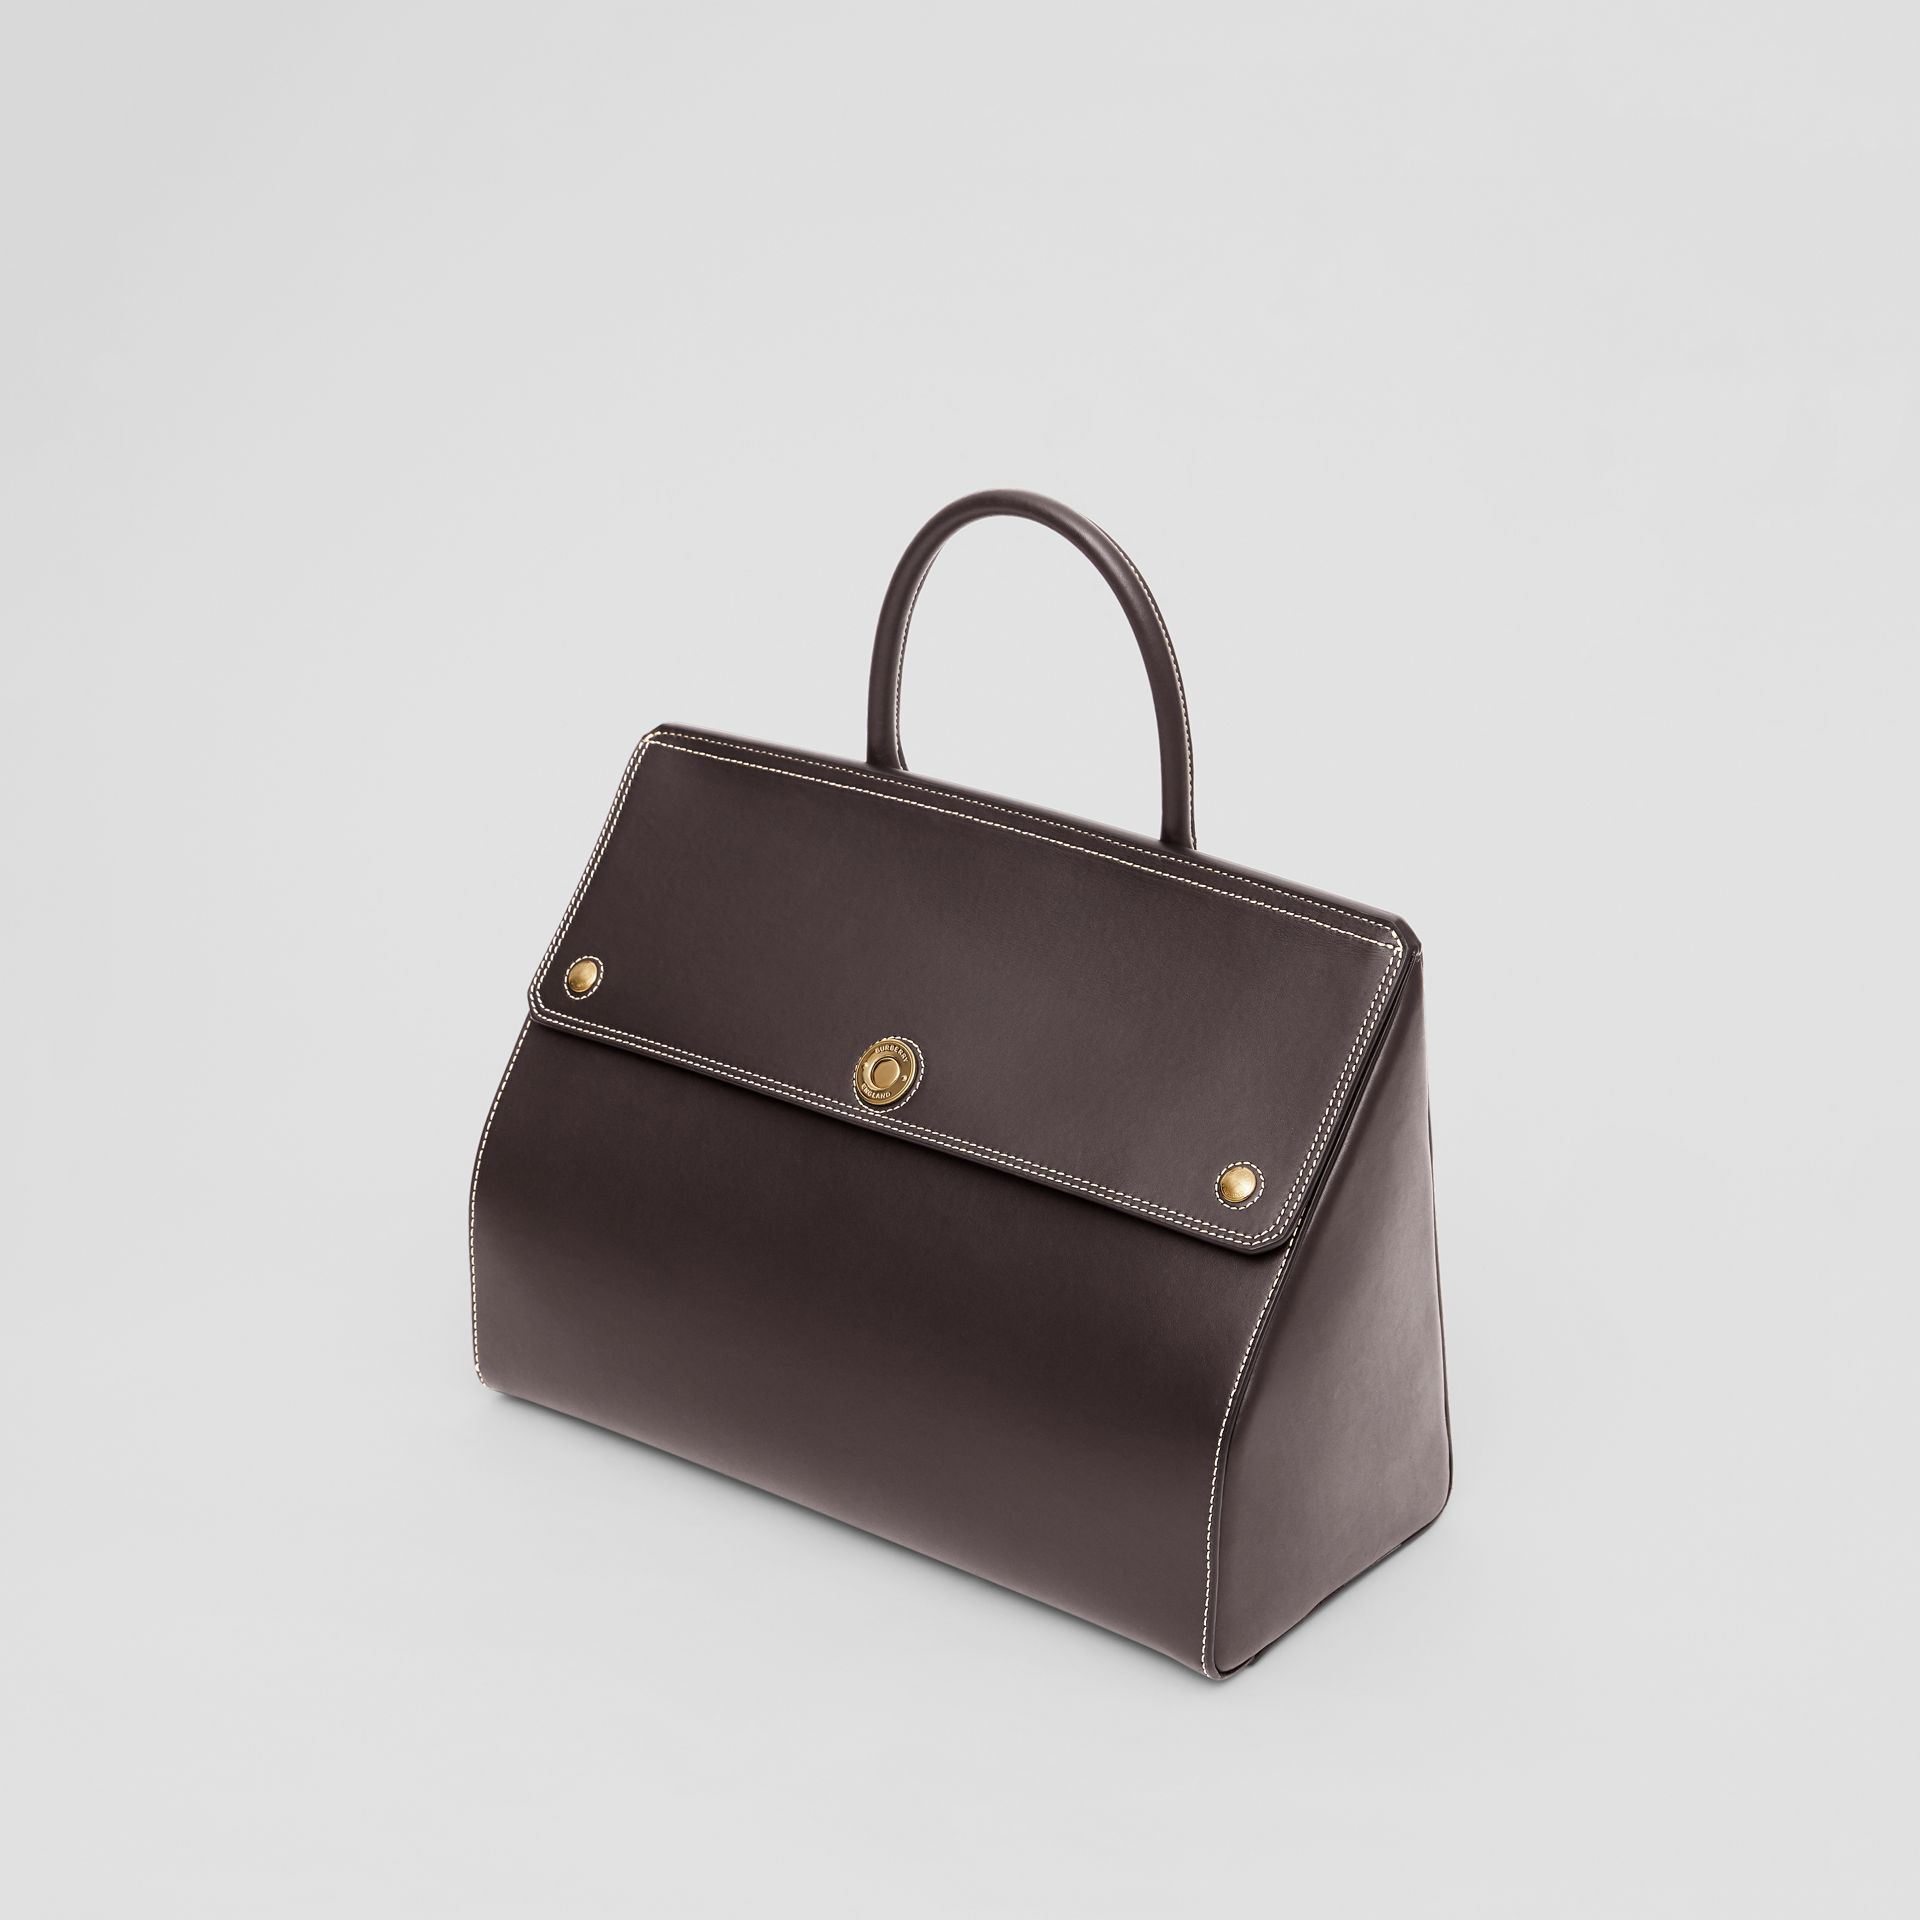 Medium Leather Elizabeth Bag in Coffee - Women | Burberry Canada - gallery image 3